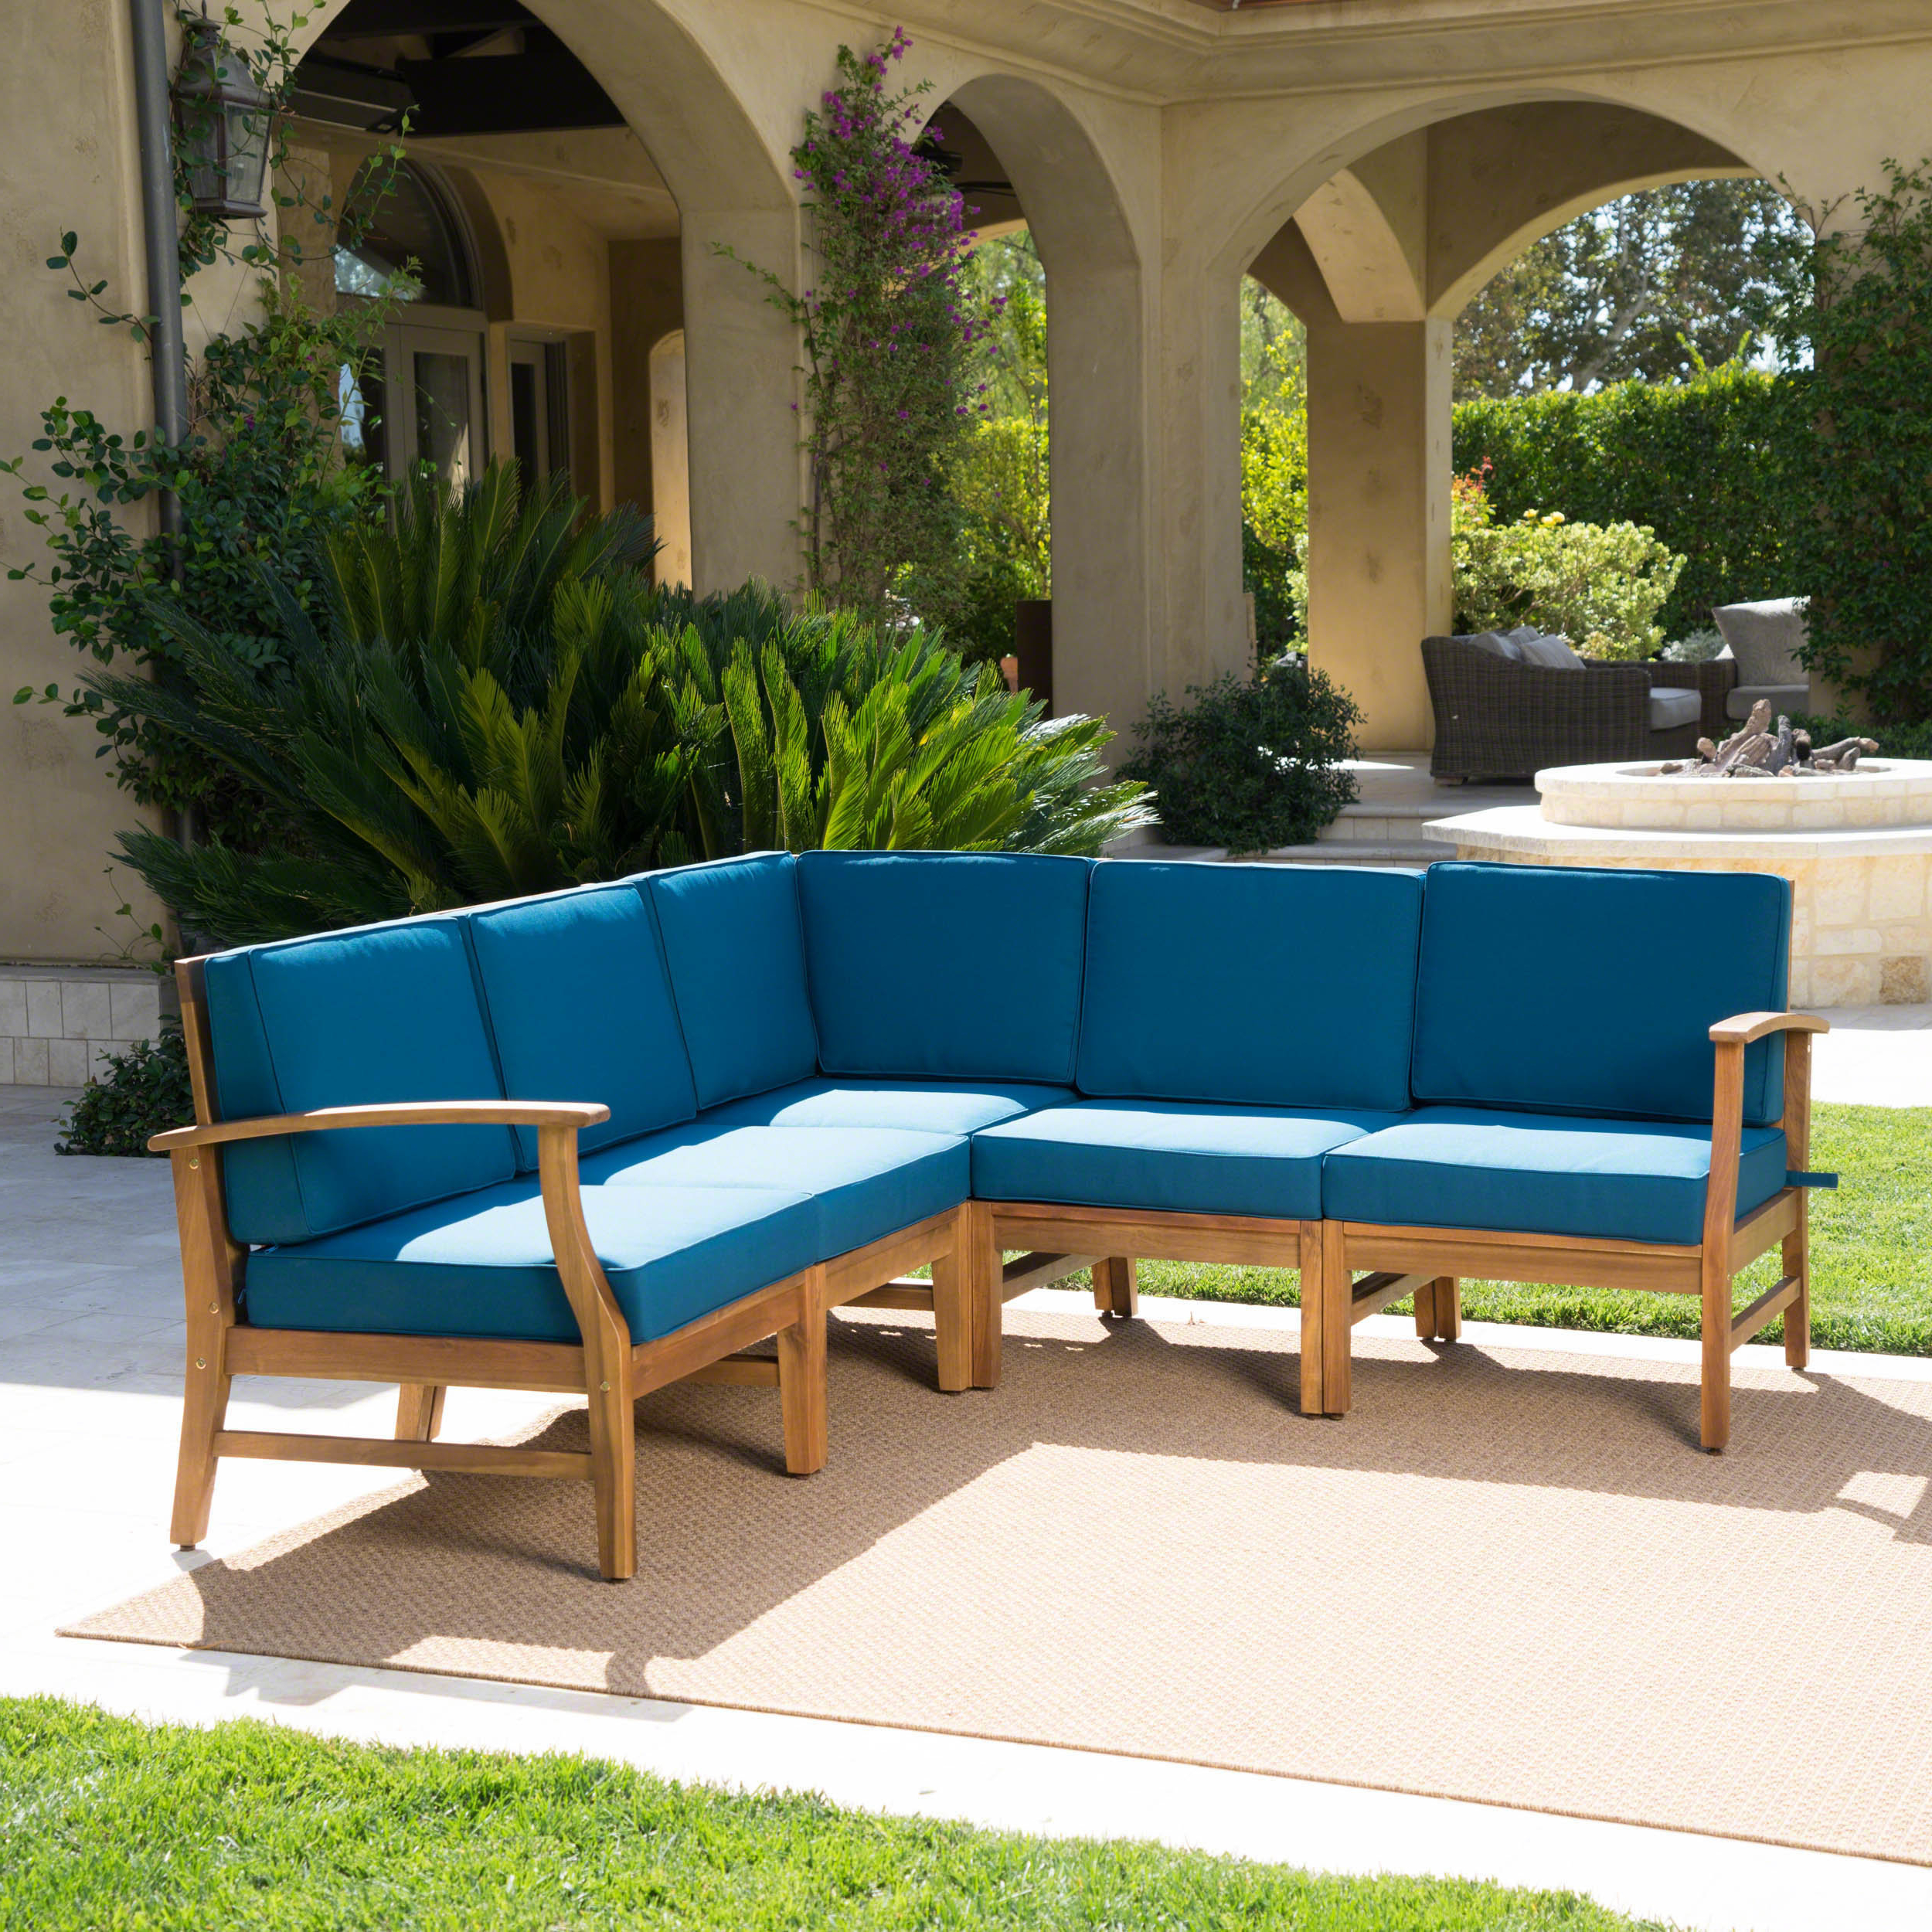 Antonia Teak Patio Sectionals With Cushions Within Preferred Antonia Teak Patio Sectional With Cushions (View 4 of 25)